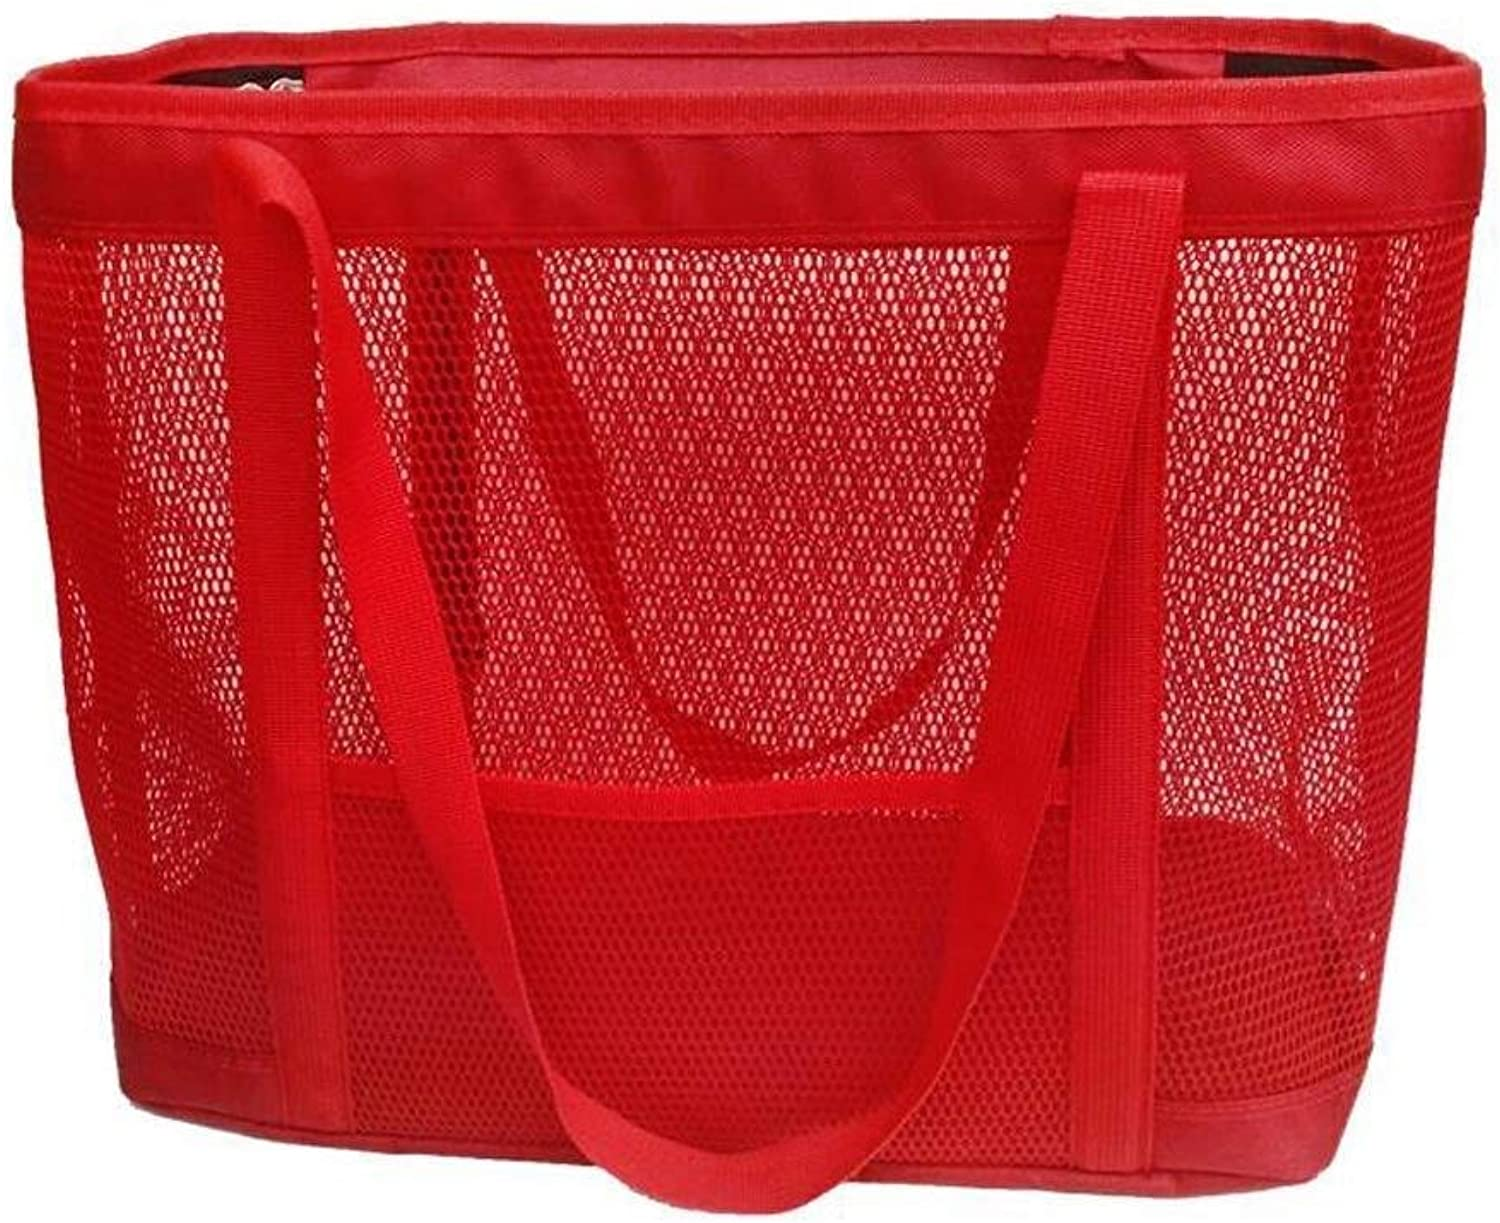 Pet Backpack Out Of The Foldable Portable Portable Breathable Pet Cage, Suitable For Cats, Dogs And Other Pets (red)